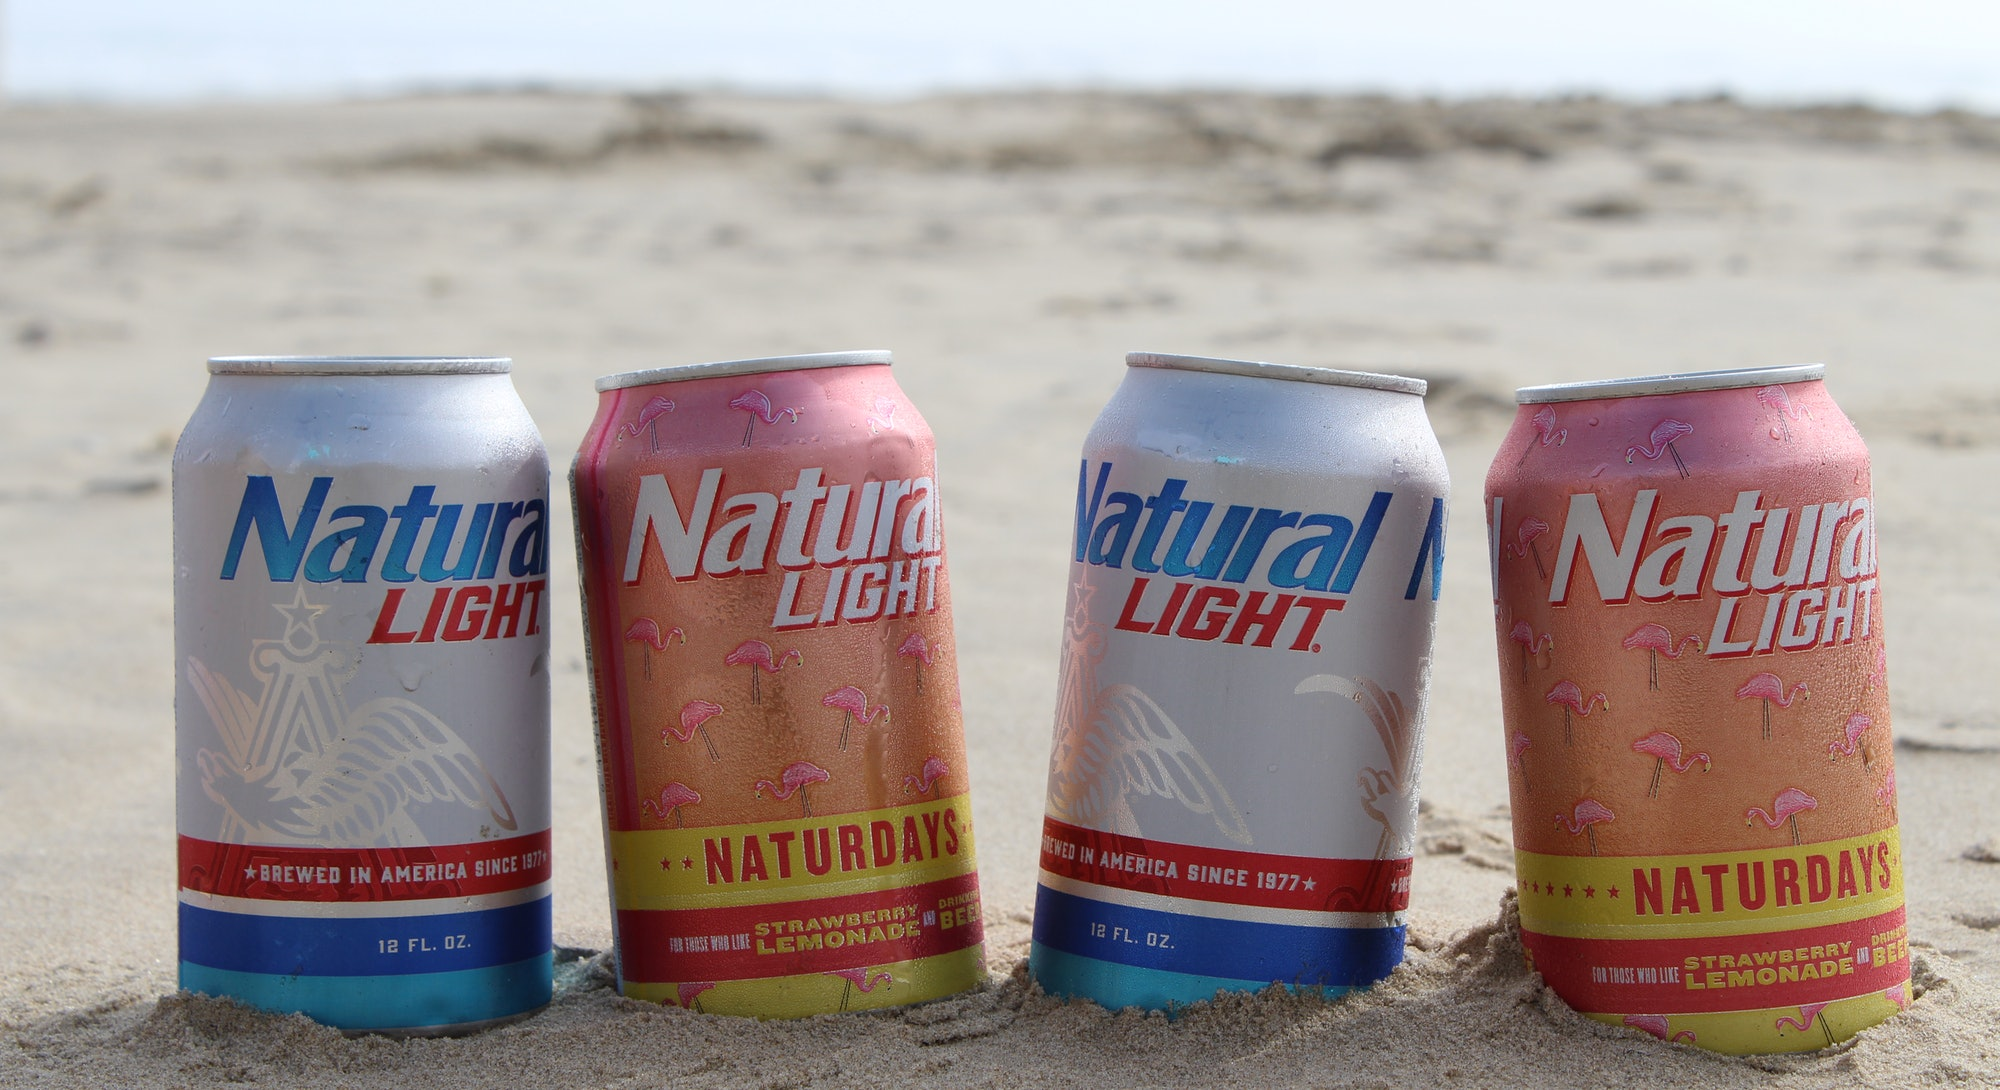 Natty Light introduced Naturdays beer line in 2019.